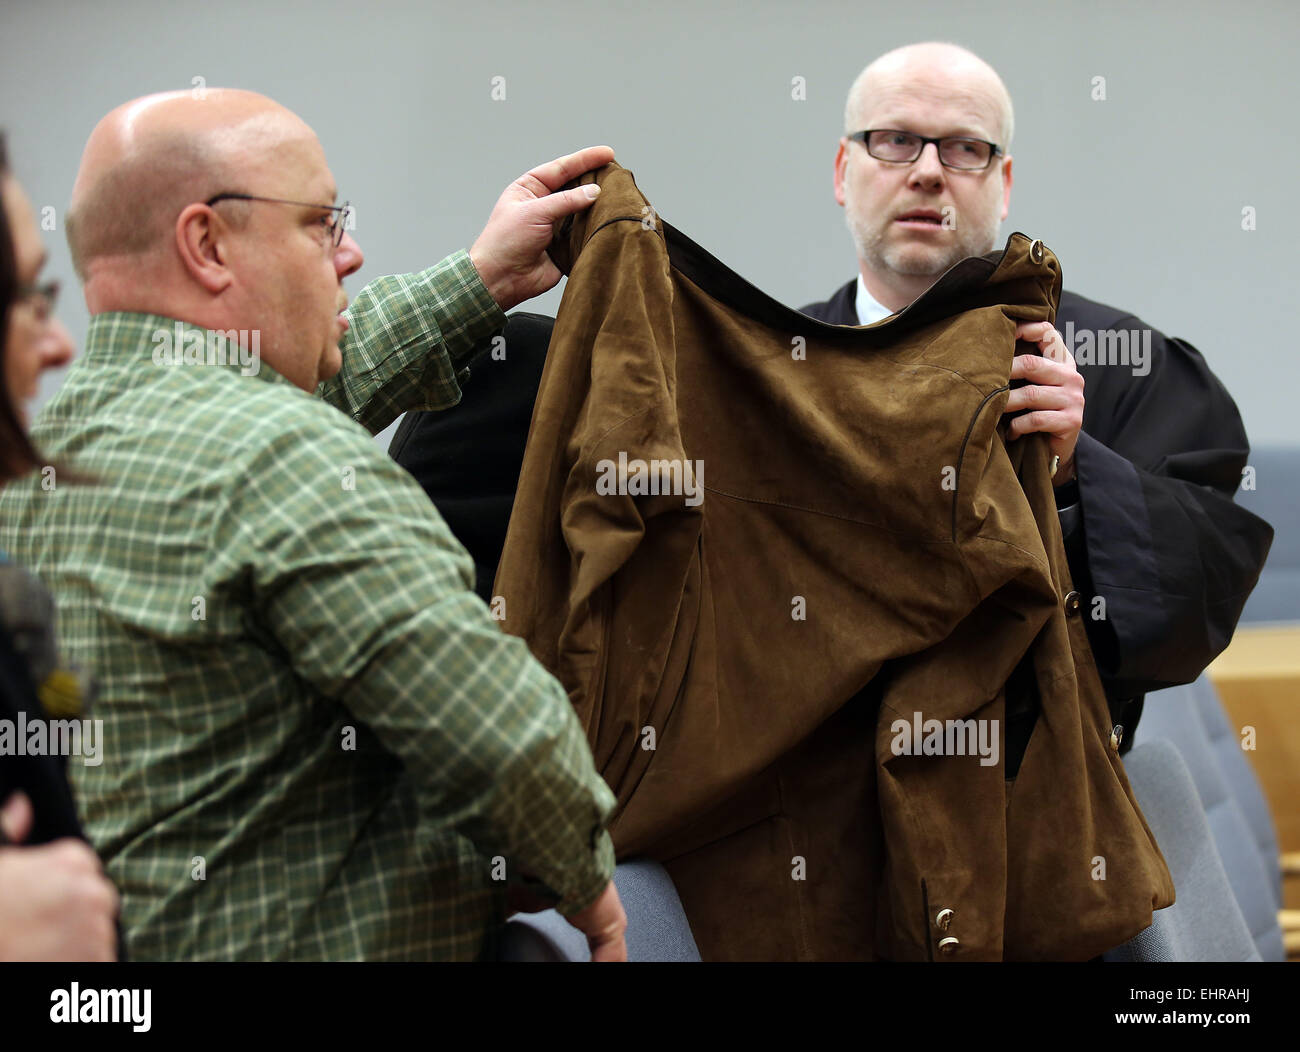 Siegen, Germany. 17th Mar, 2015. A 32-year old woman is covered with a jacket by her lawyer Daniel Nierenz (r) and - Stock Image